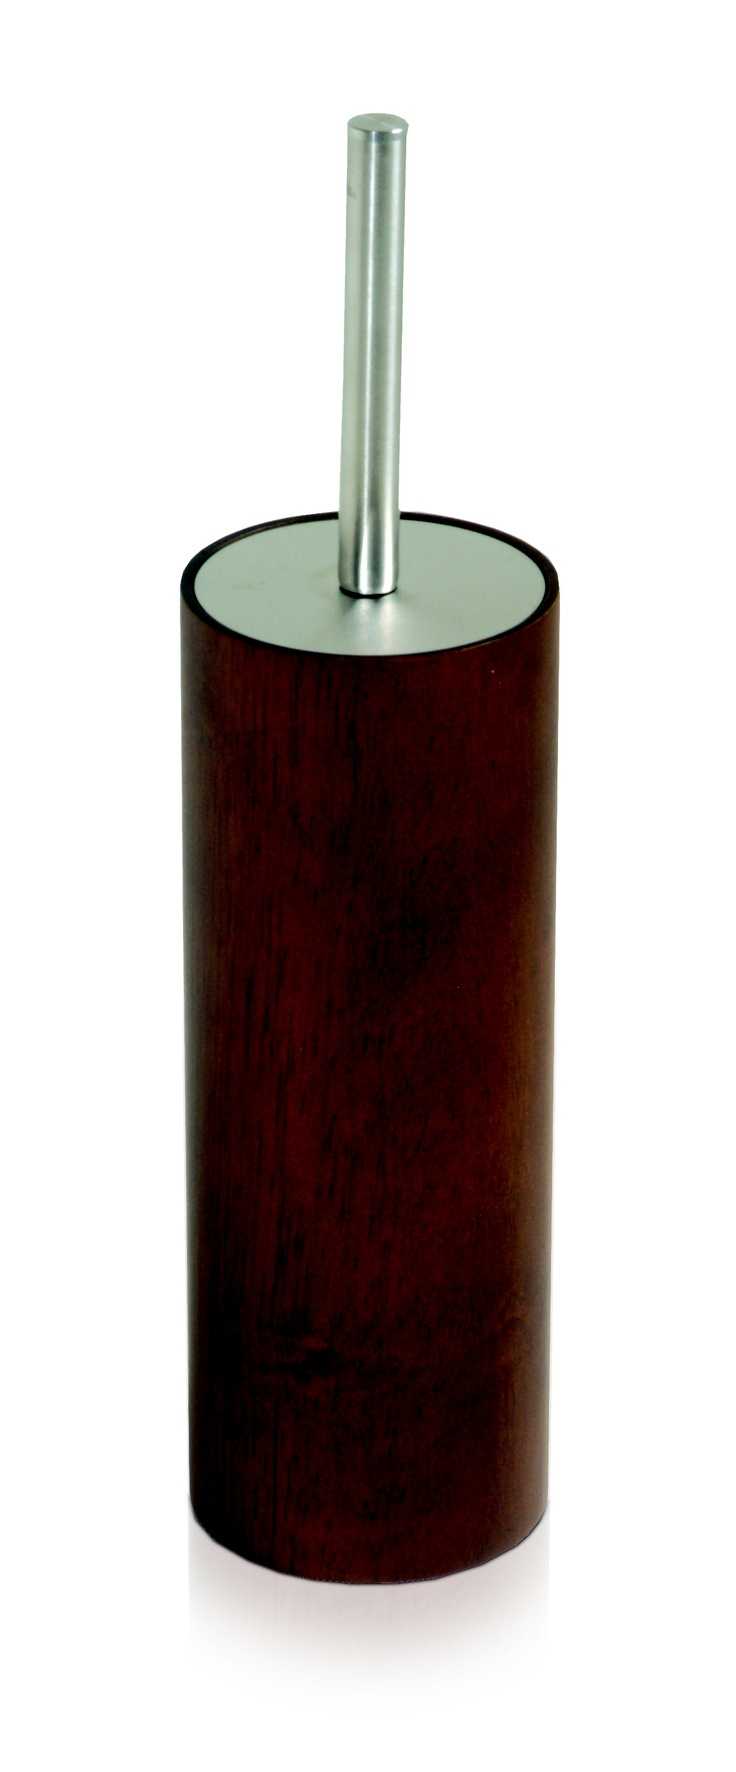 Maroon Bathroom Accessories 17 Best Images About Bathroom Accessories On Pinterest Toilets